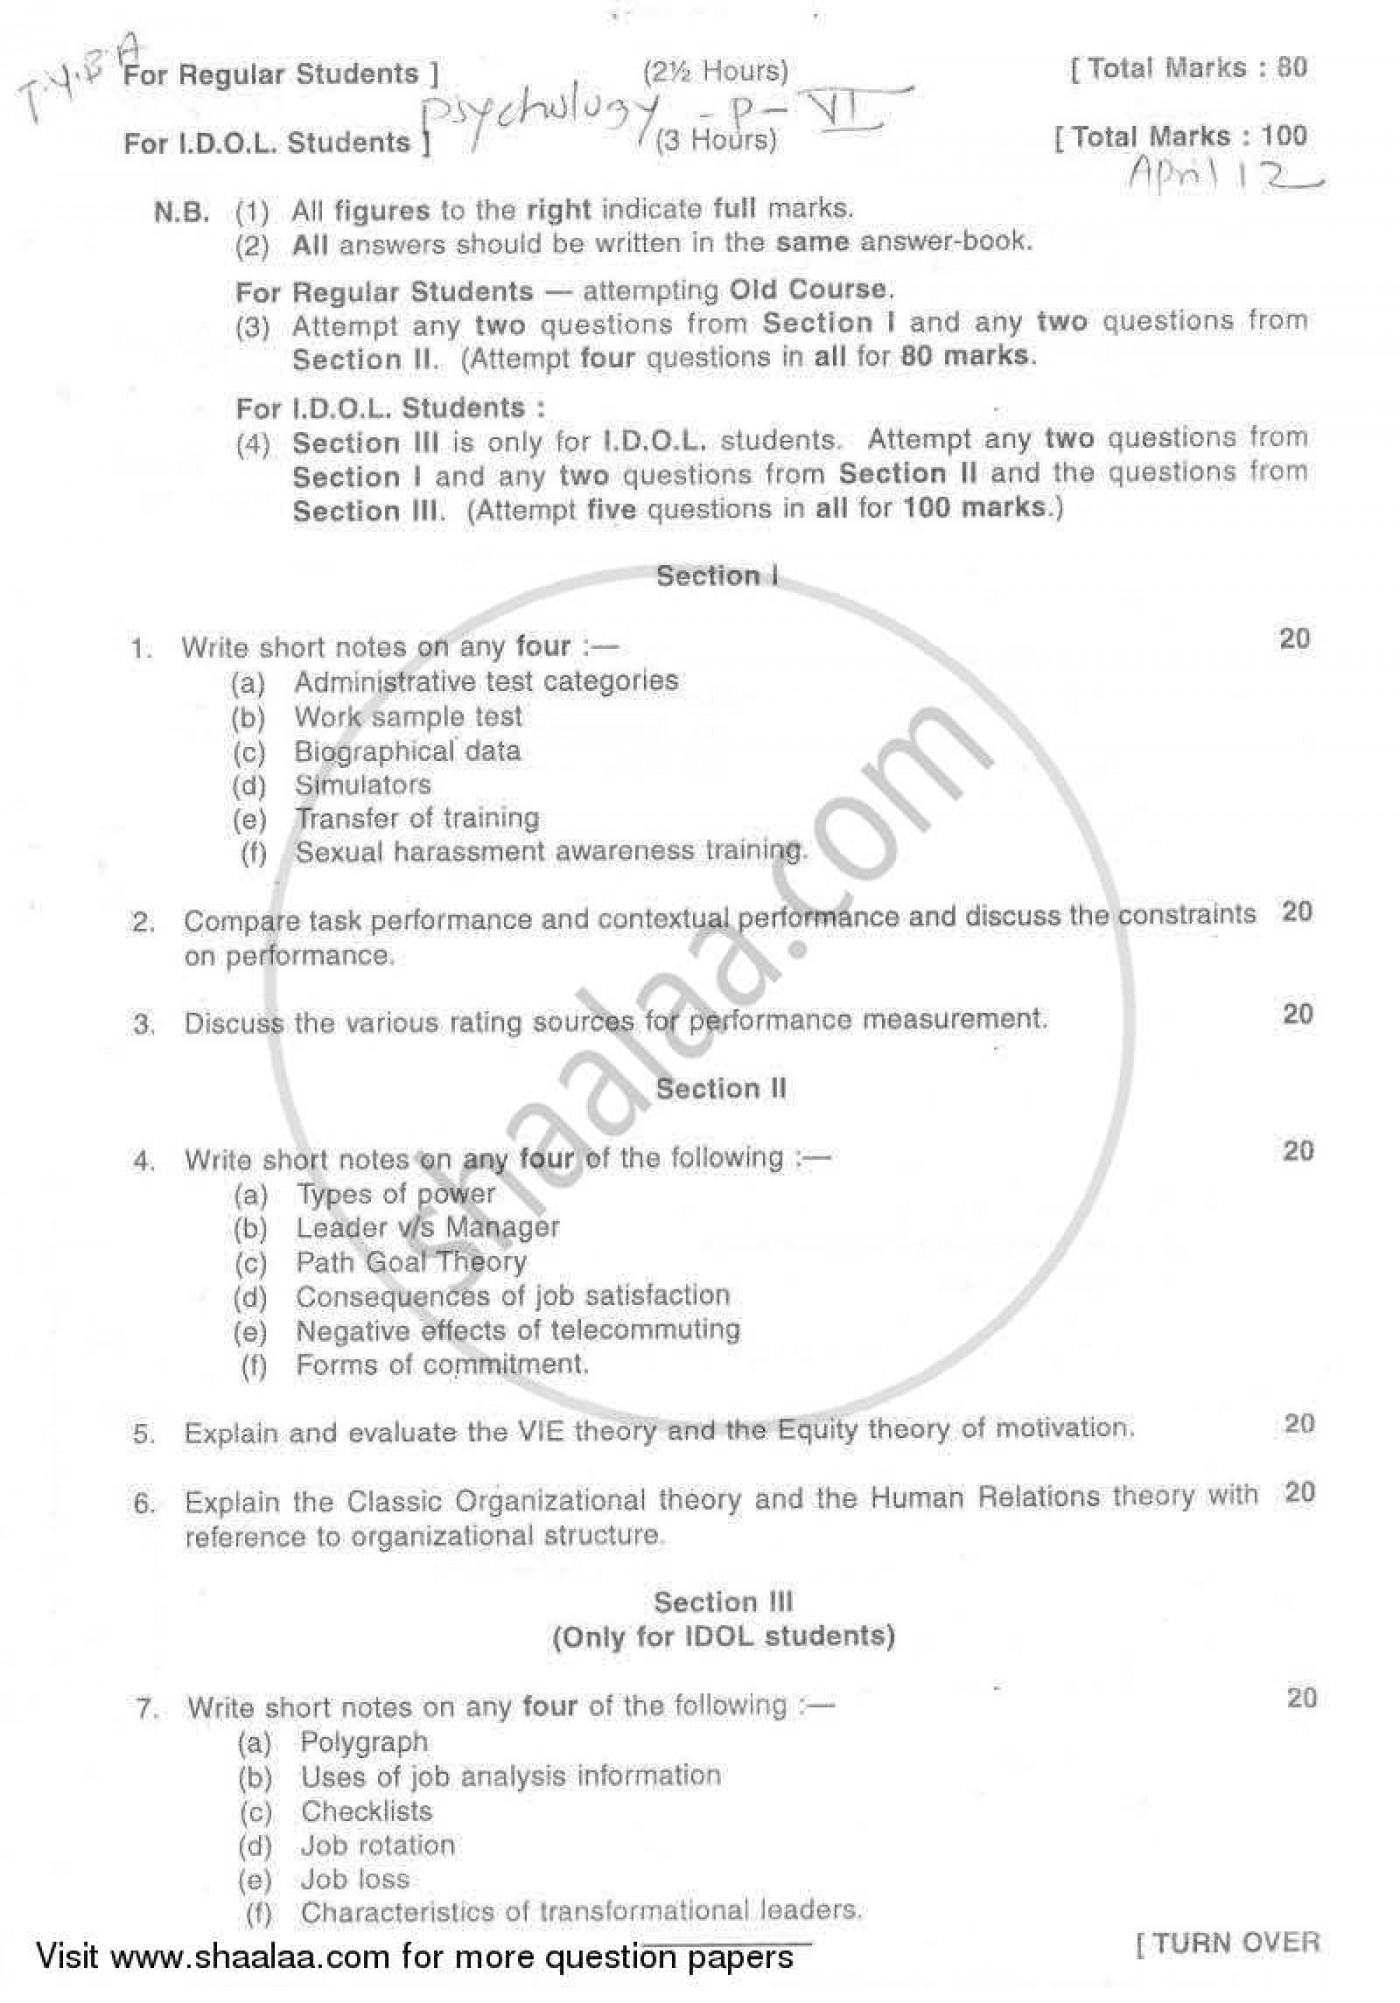 017 Psychologyearch Paper On Dreams University Of Mumbai Bachelor Industrial Organizational T Y Yearly Pattern Semester Tyba 2011 29a03925dfc524f2aa4cb10e4d3da996a Singular Psychology Research Articles 2018 Topics 1400